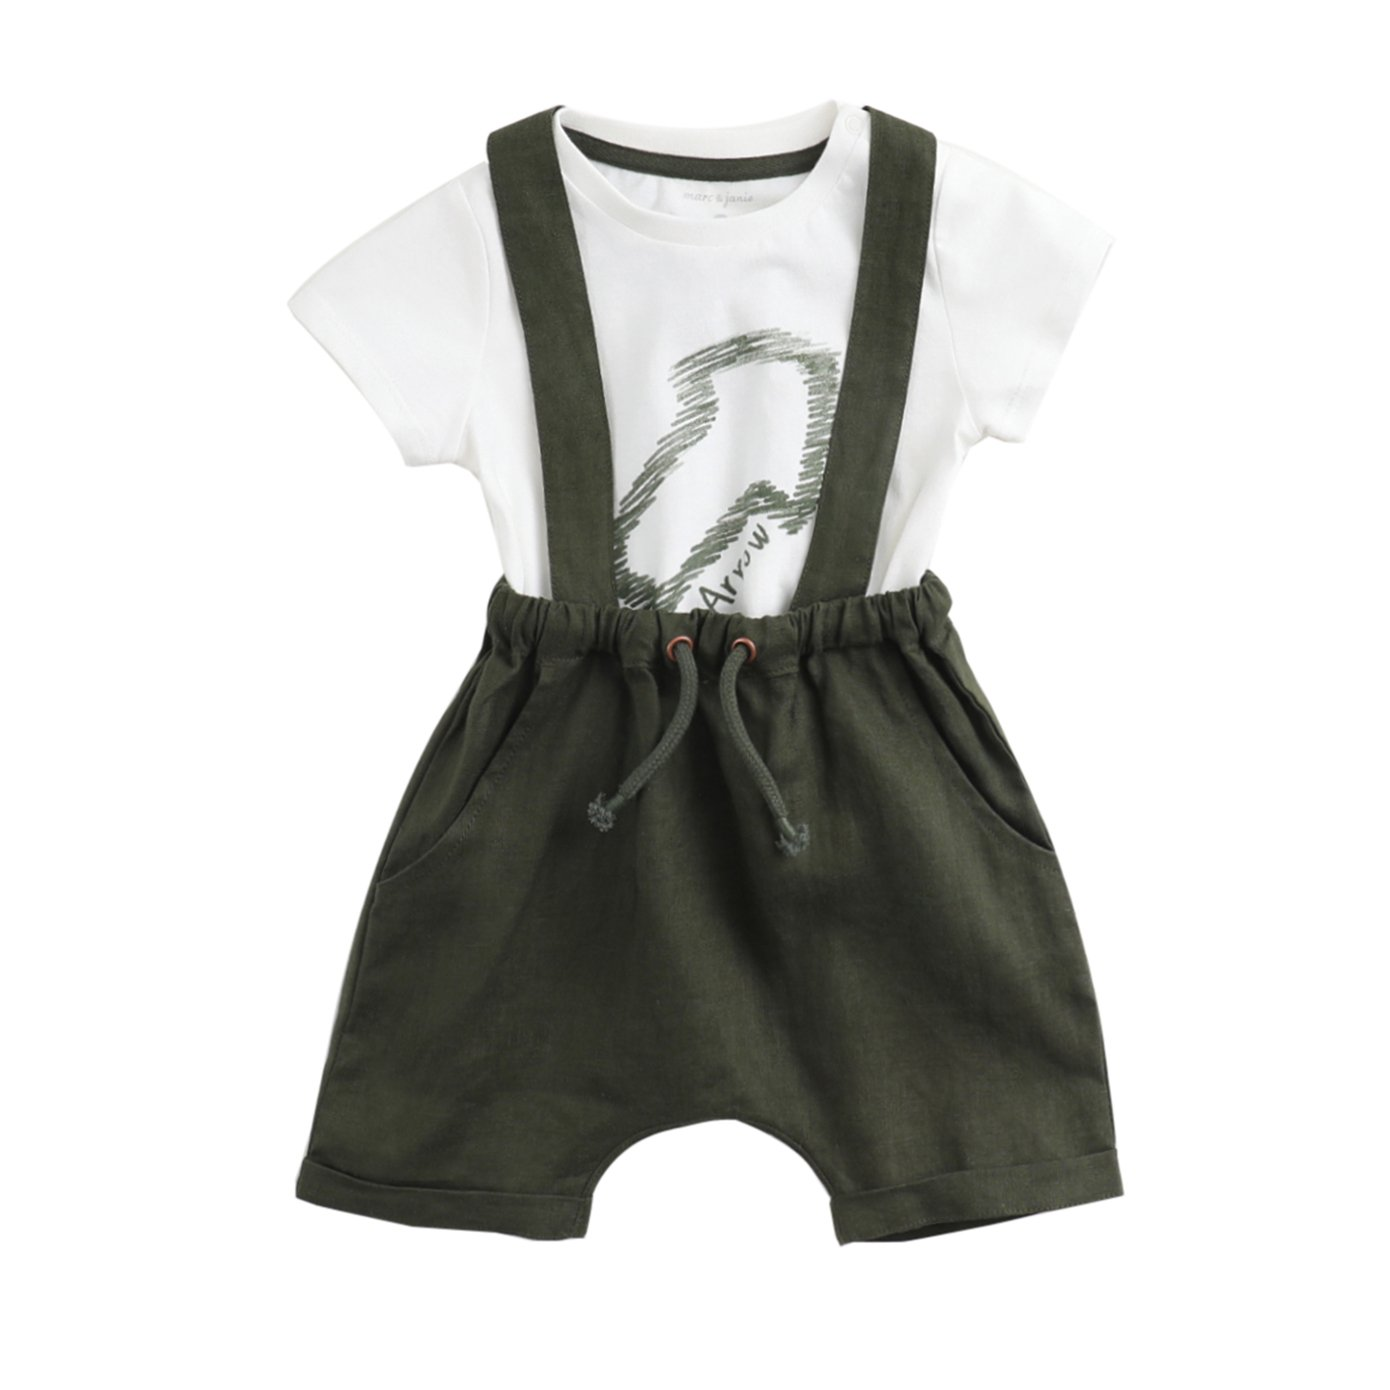 marc janie Summer Boys' Cotton Greenery Short Sleeve T-Shirts and Soft Linen Shorts Overalls Infant Baby Tees Set White 24 Months (80 cm)